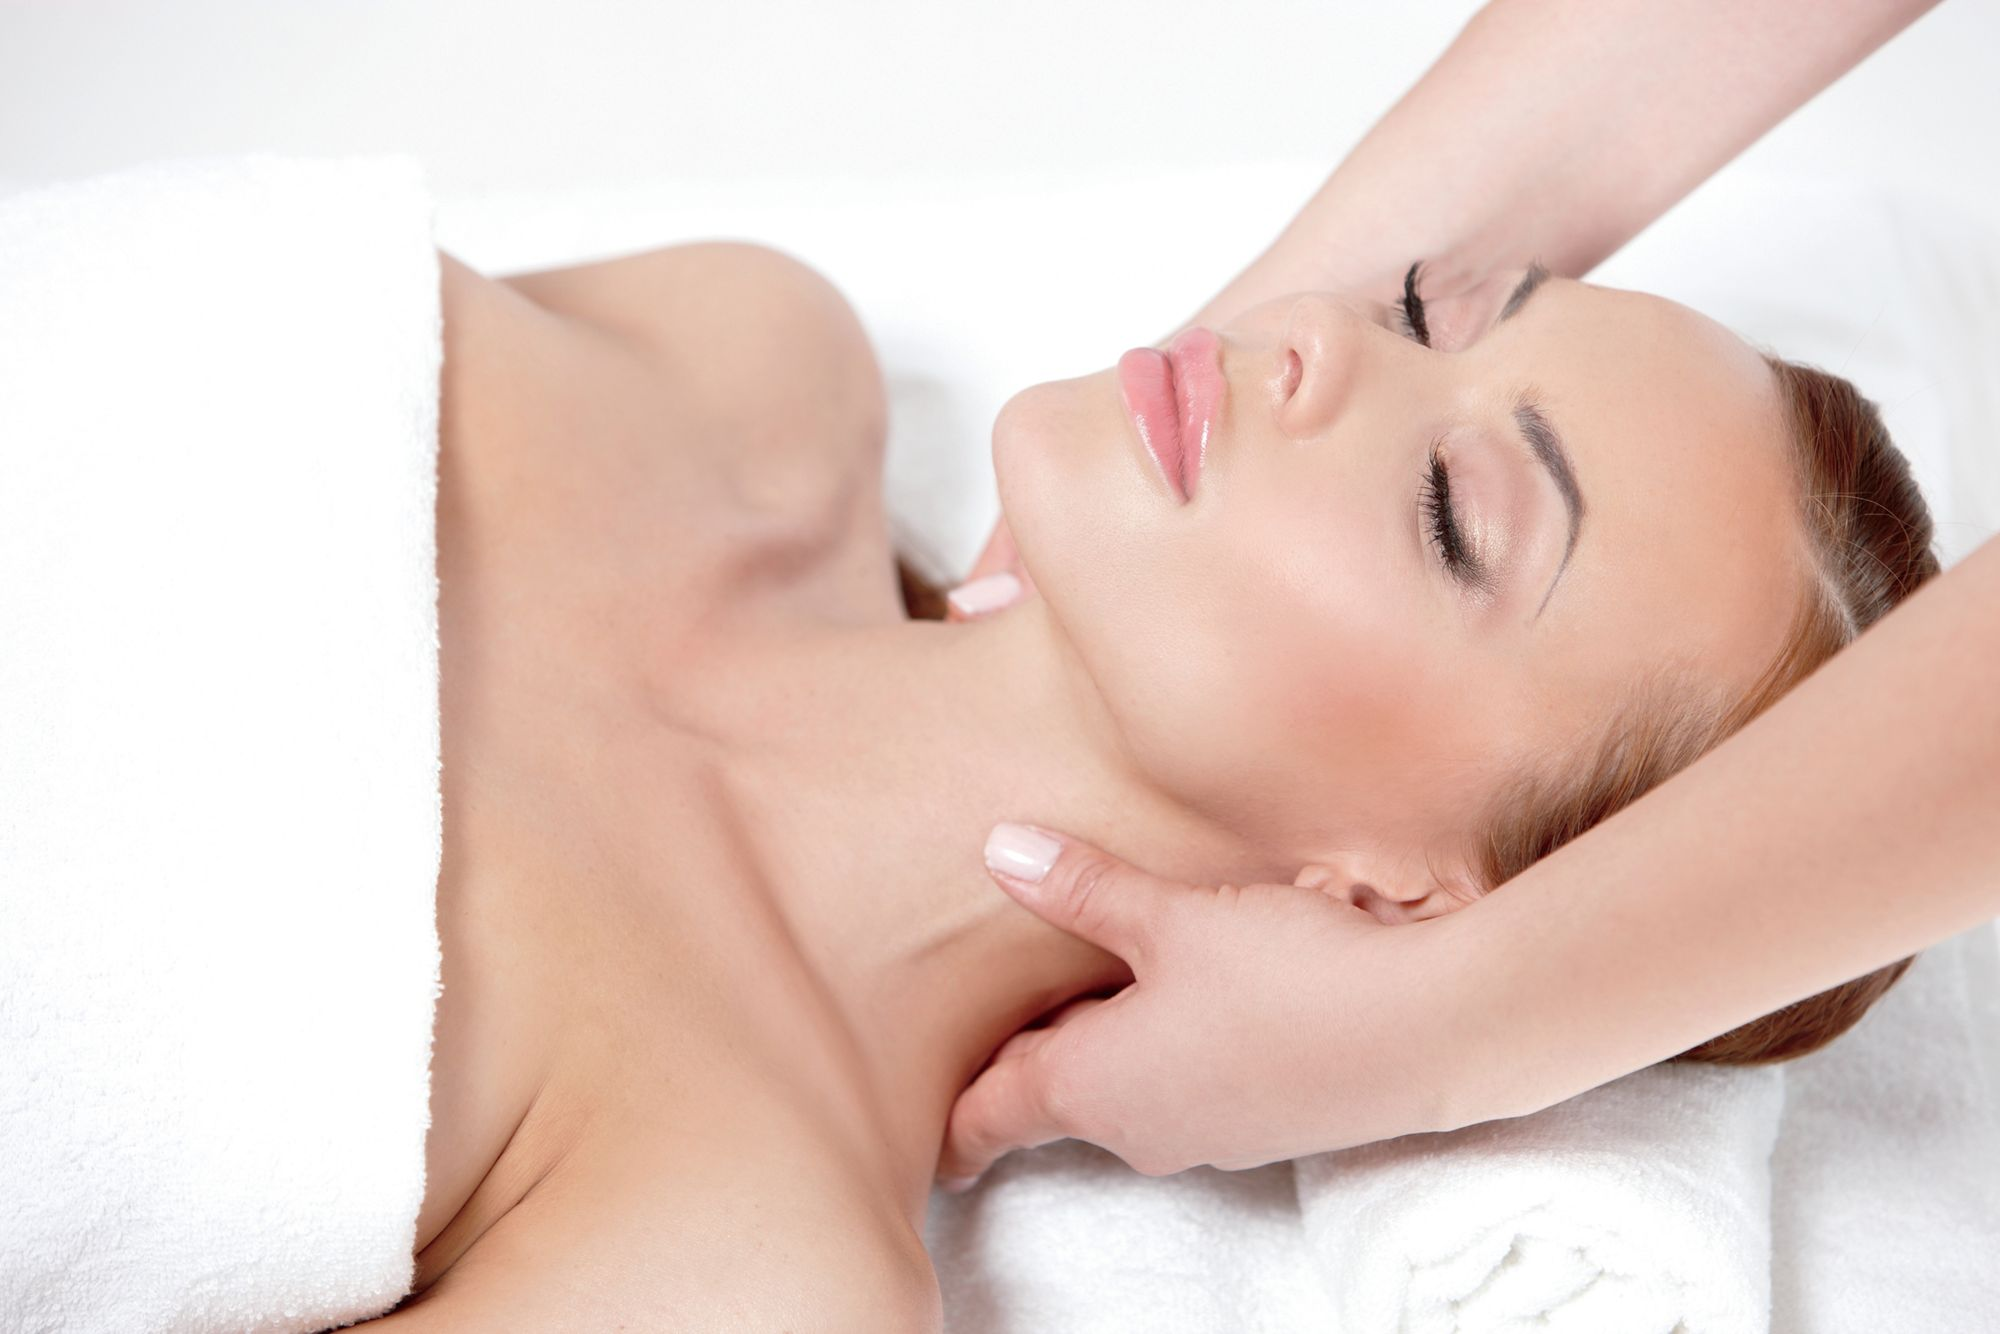 A woman lies on her back getting her neck massaged